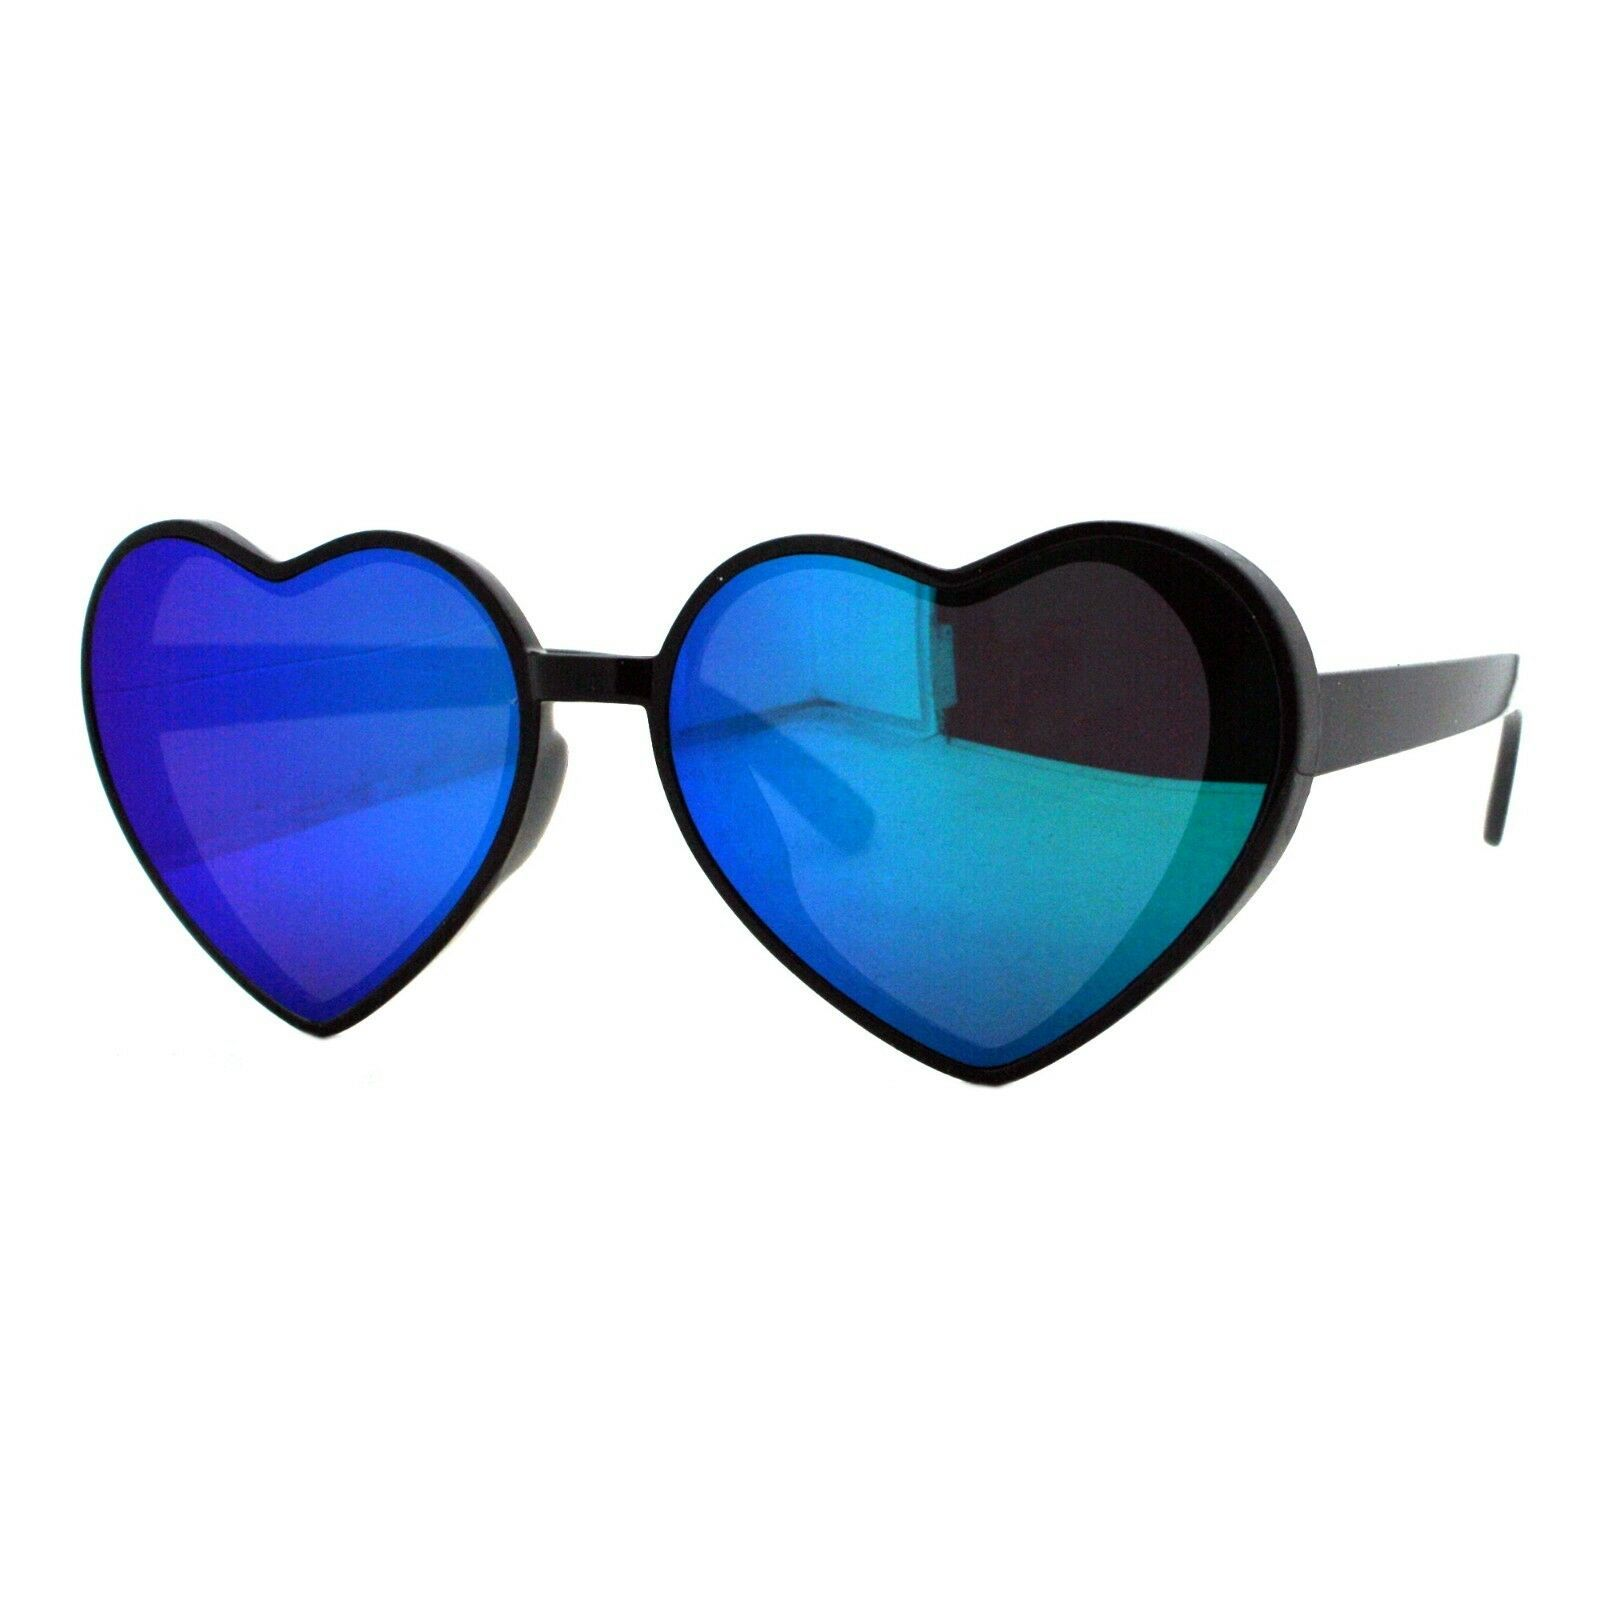 Oversized Heart Shape Sunglasses Womens Fashion Mirrored Lens Shades image 13